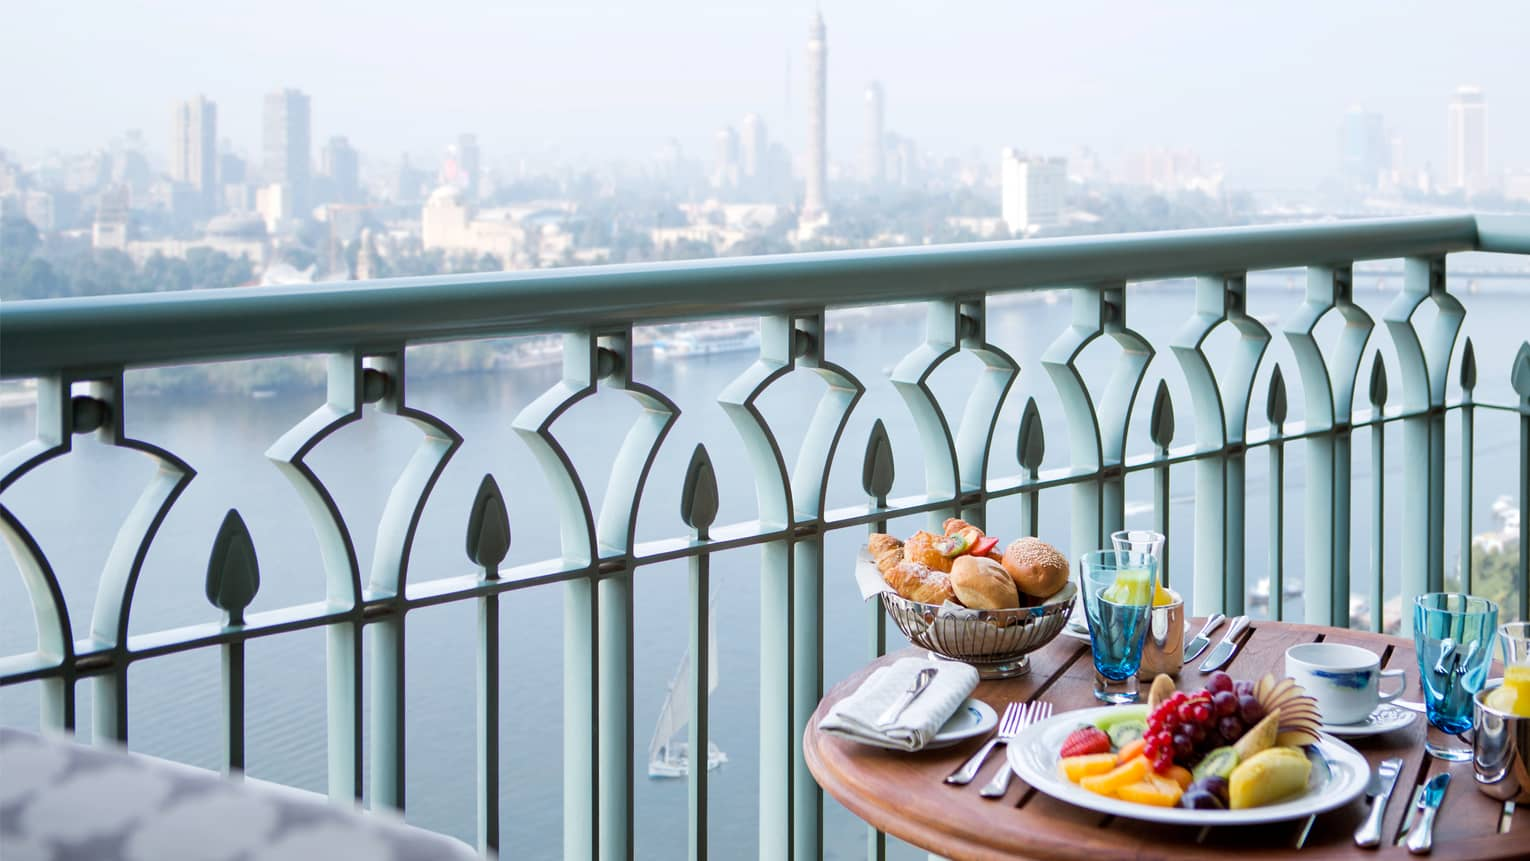 Close-up of balcony table with plate of fresh fruit, bread and orange juice, river and city view below